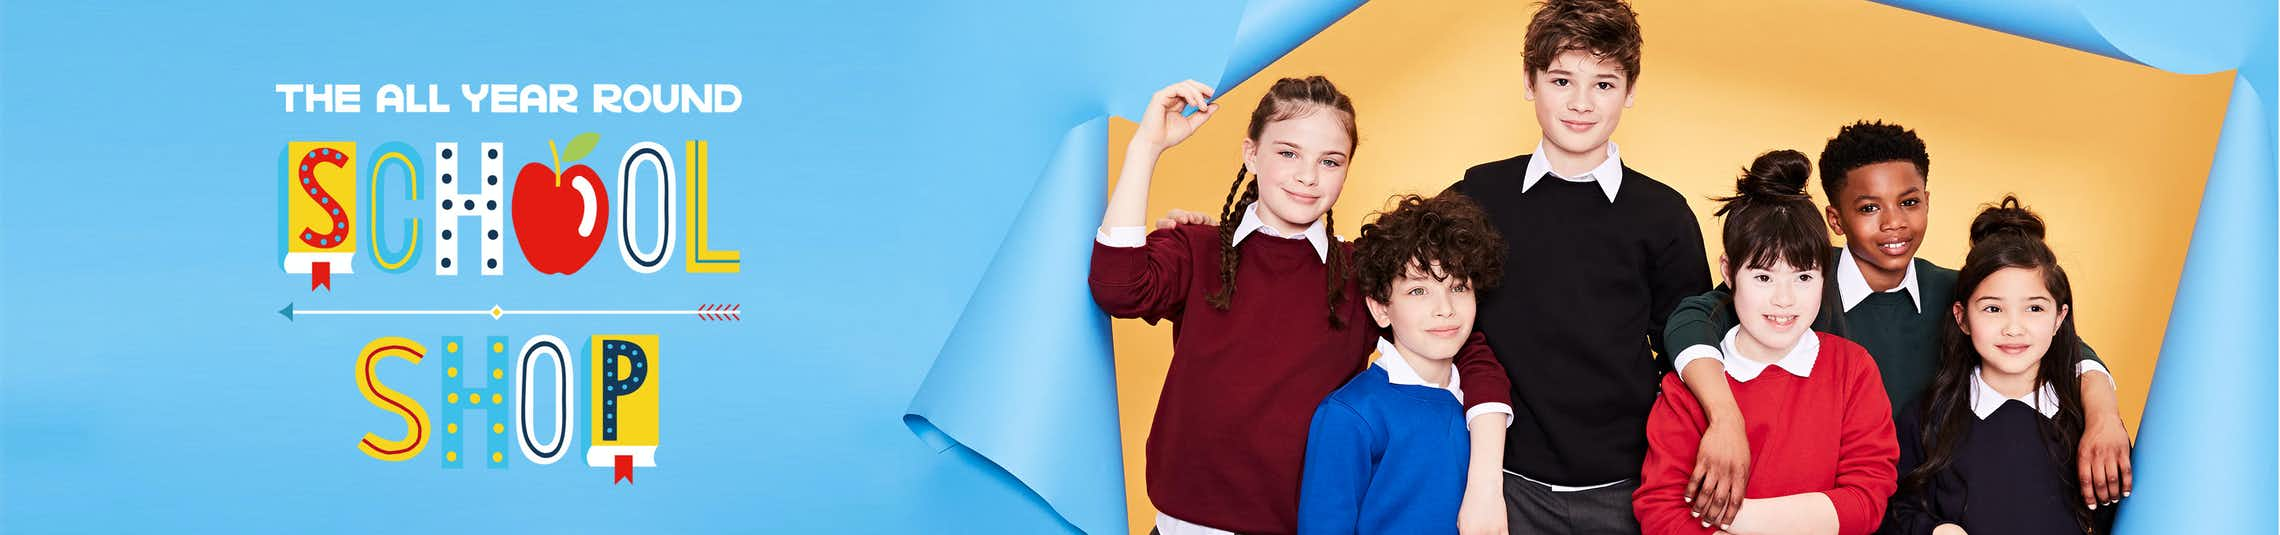 School Uniform Measuring & Buying Guide